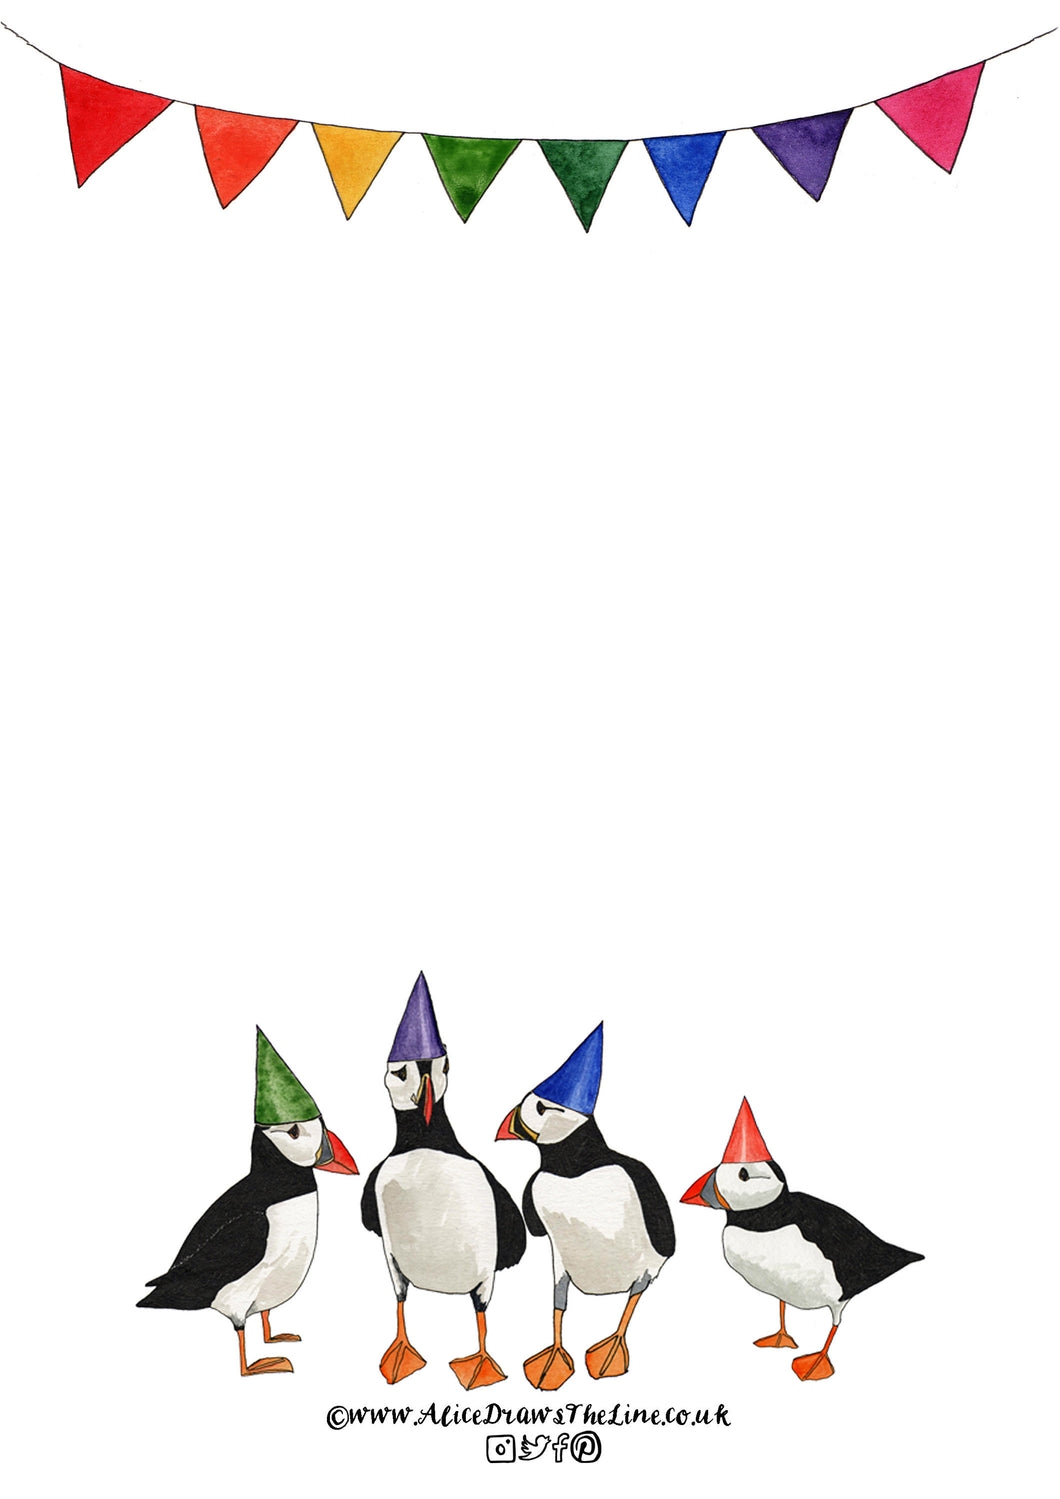 Printable Puffin A4 Puffin Letter Paper with rainbow bunting